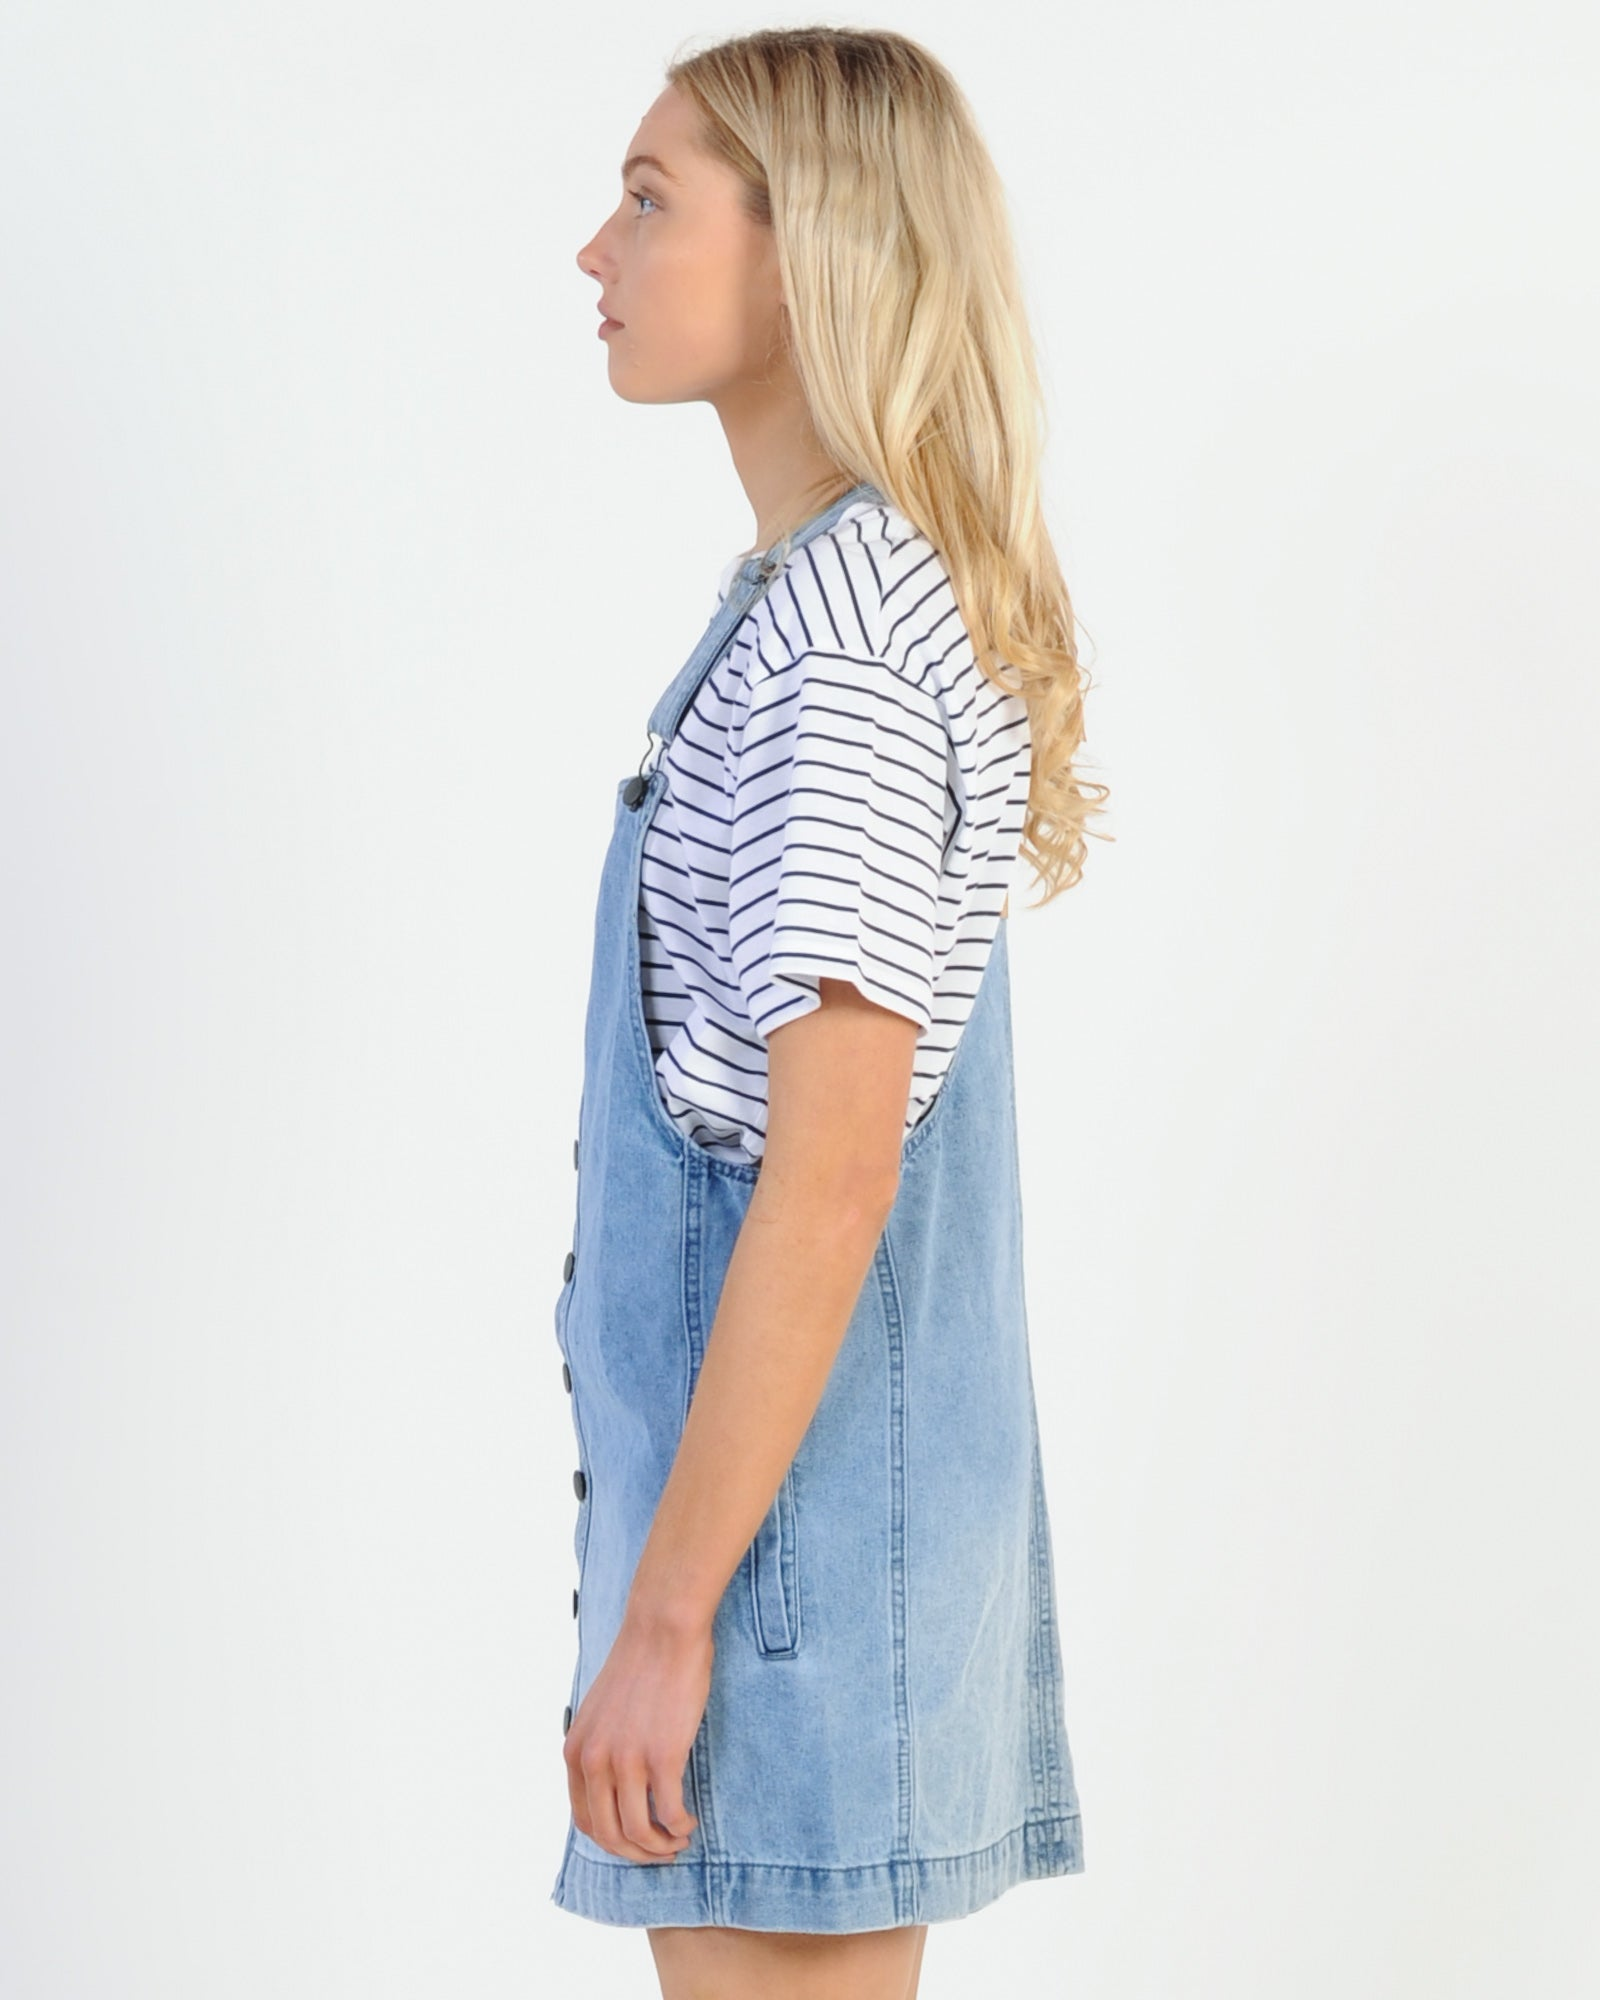 All About Eve Madeline Denim Pinafore - Mid Indigo